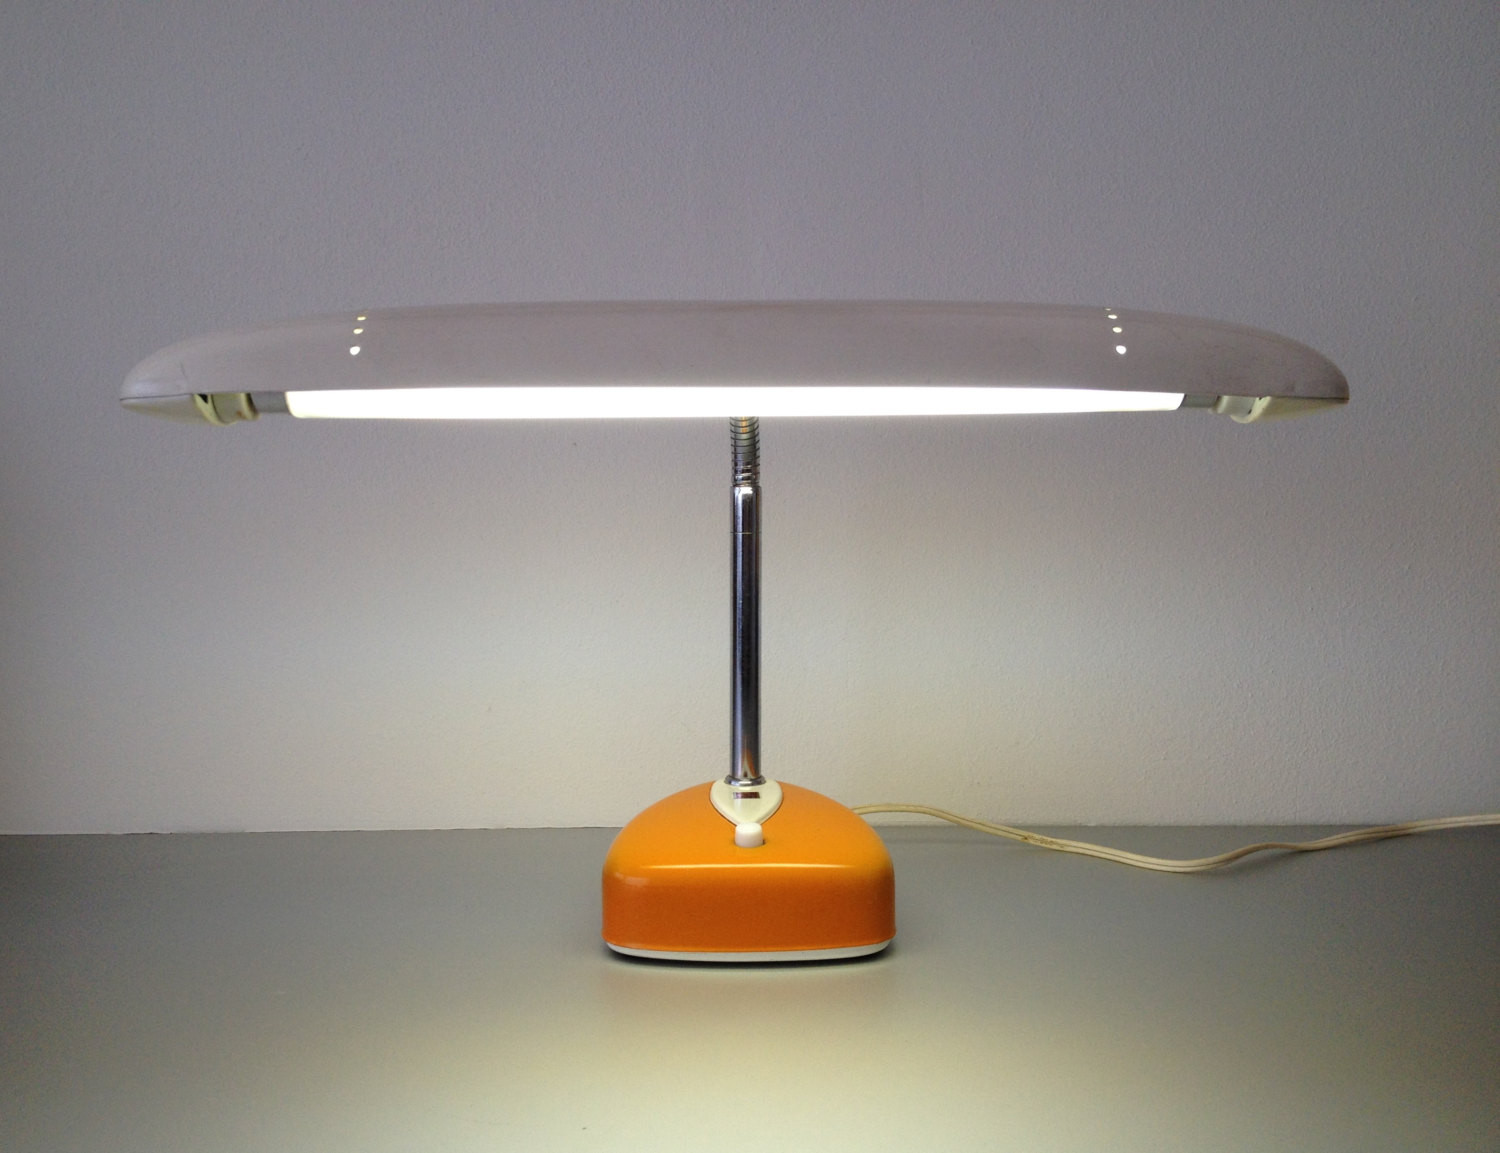 Best ideas about Fluorescent Desk Lamp . Save or Pin vintage desk lamp National Fluorescent Lamp stand Model Now.